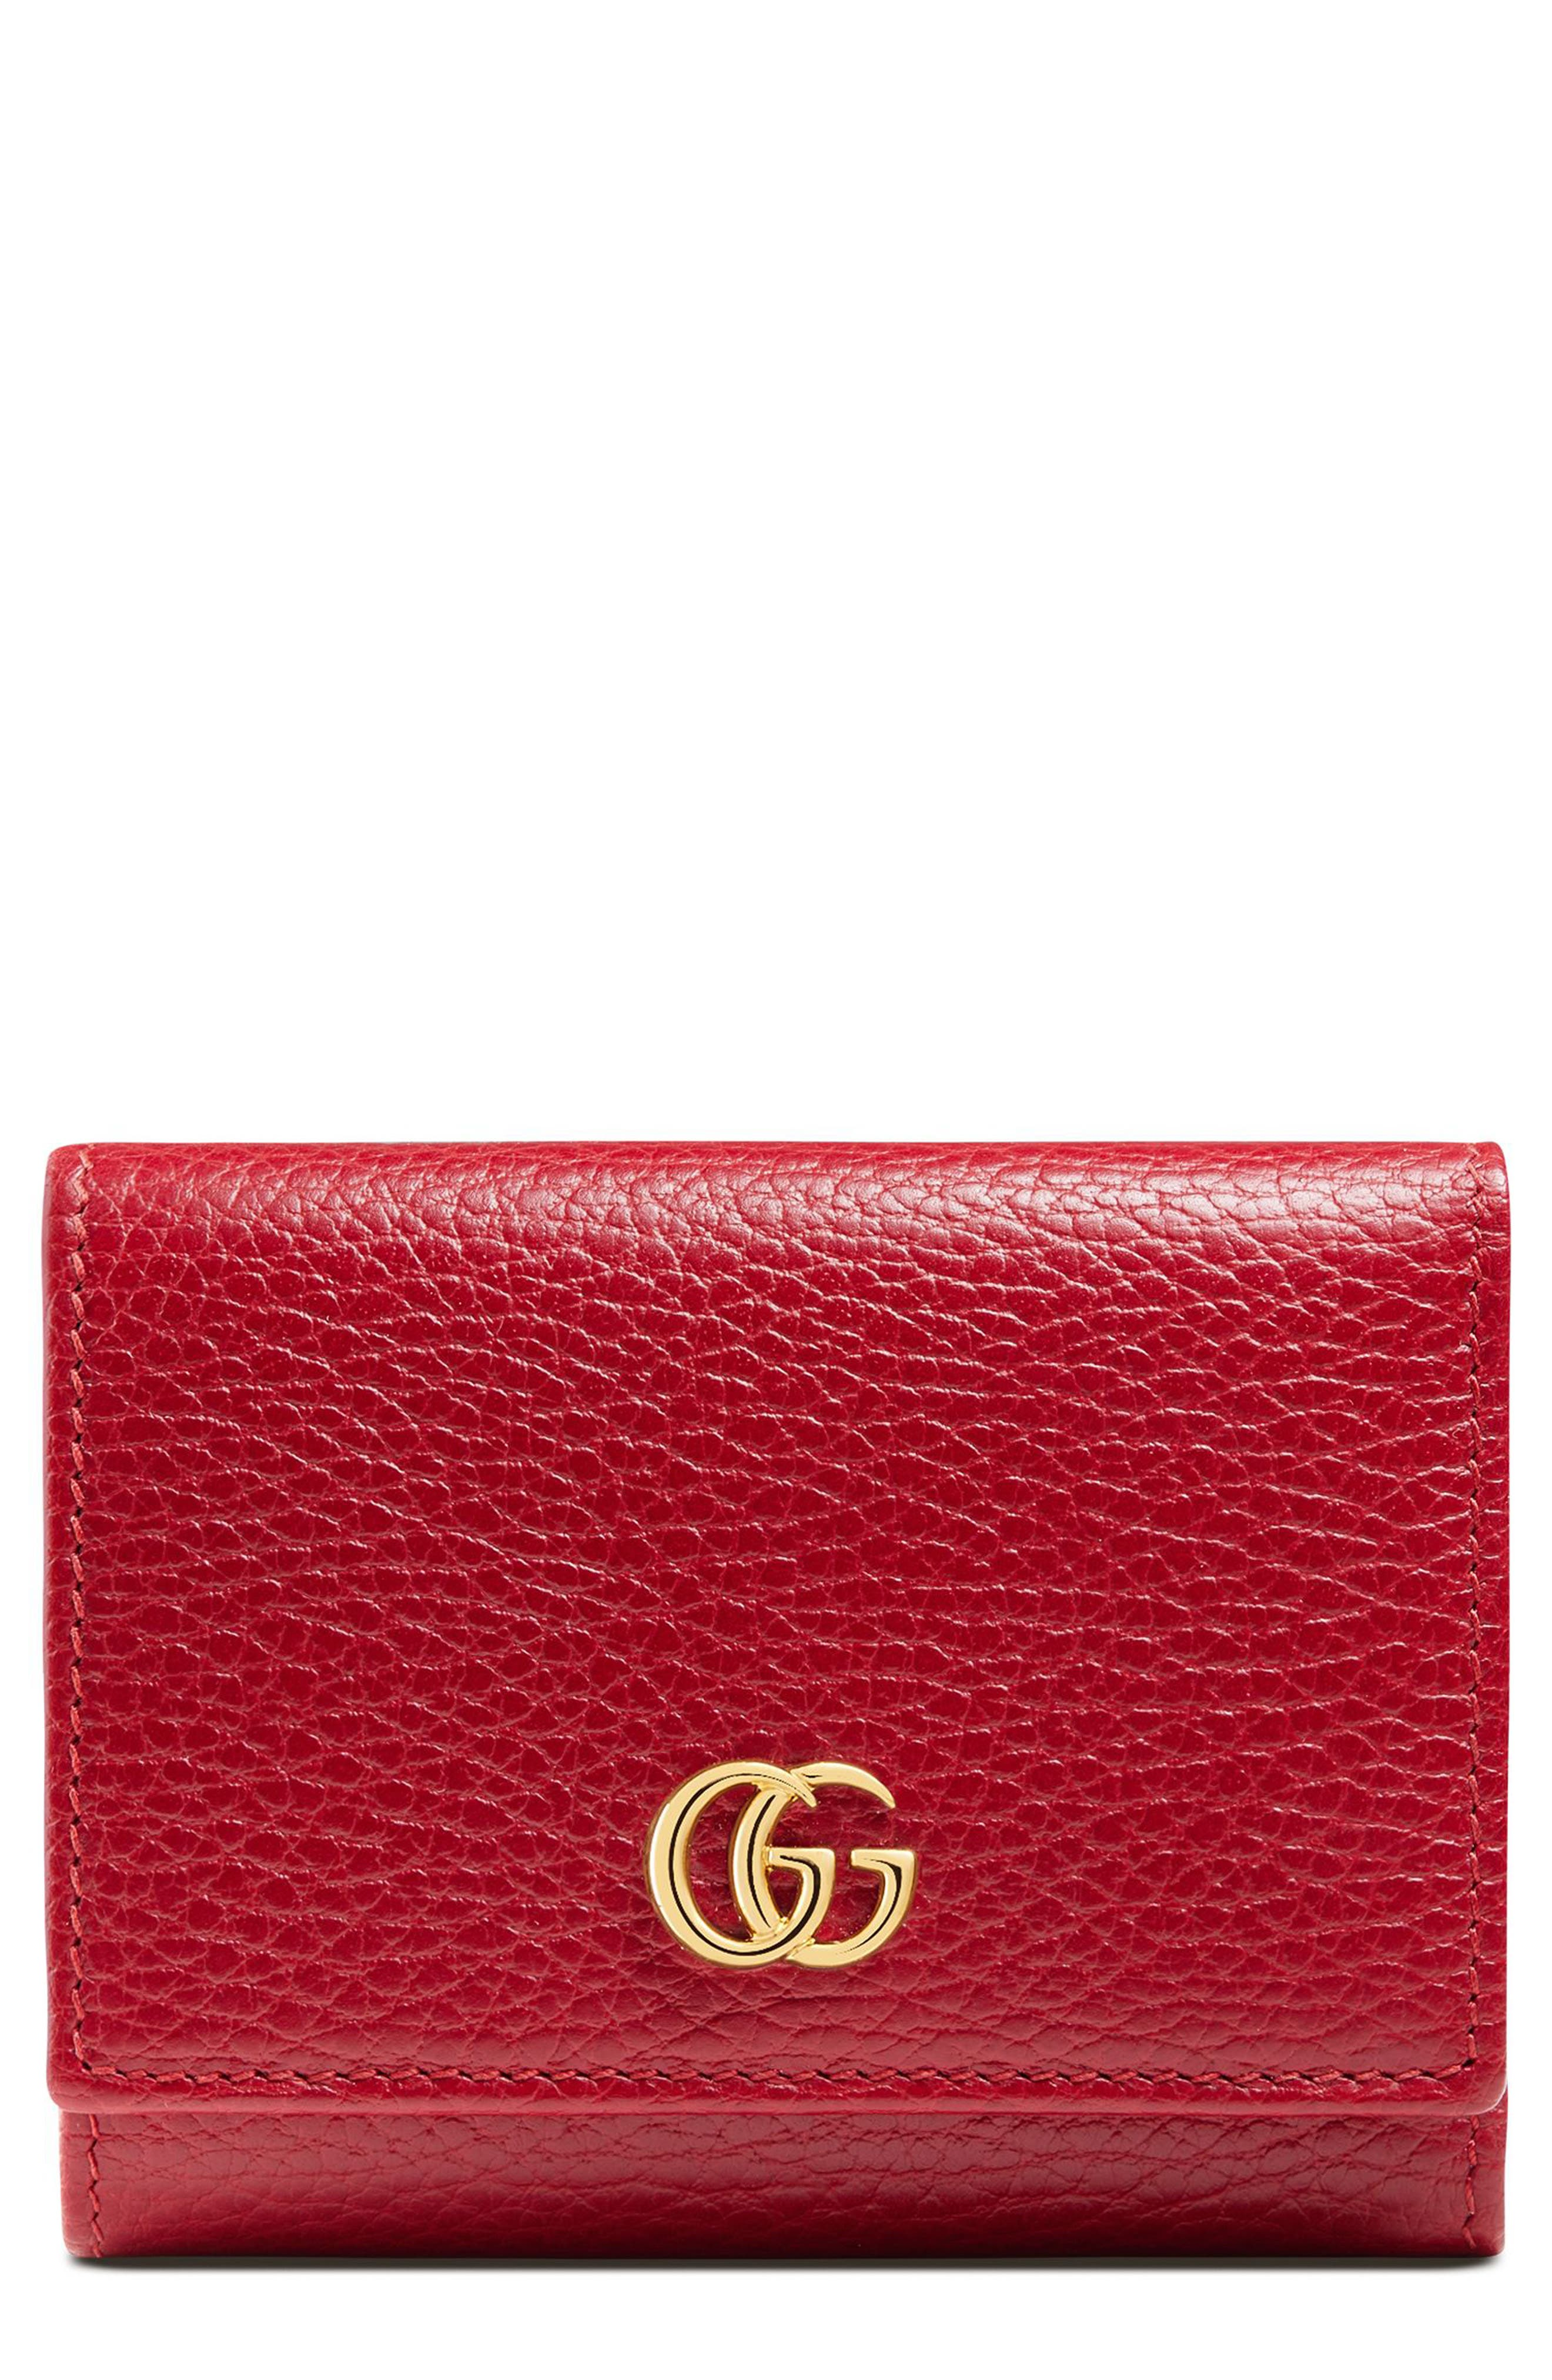 Main Image - Gucci Petite Marmont Leather French Wallet